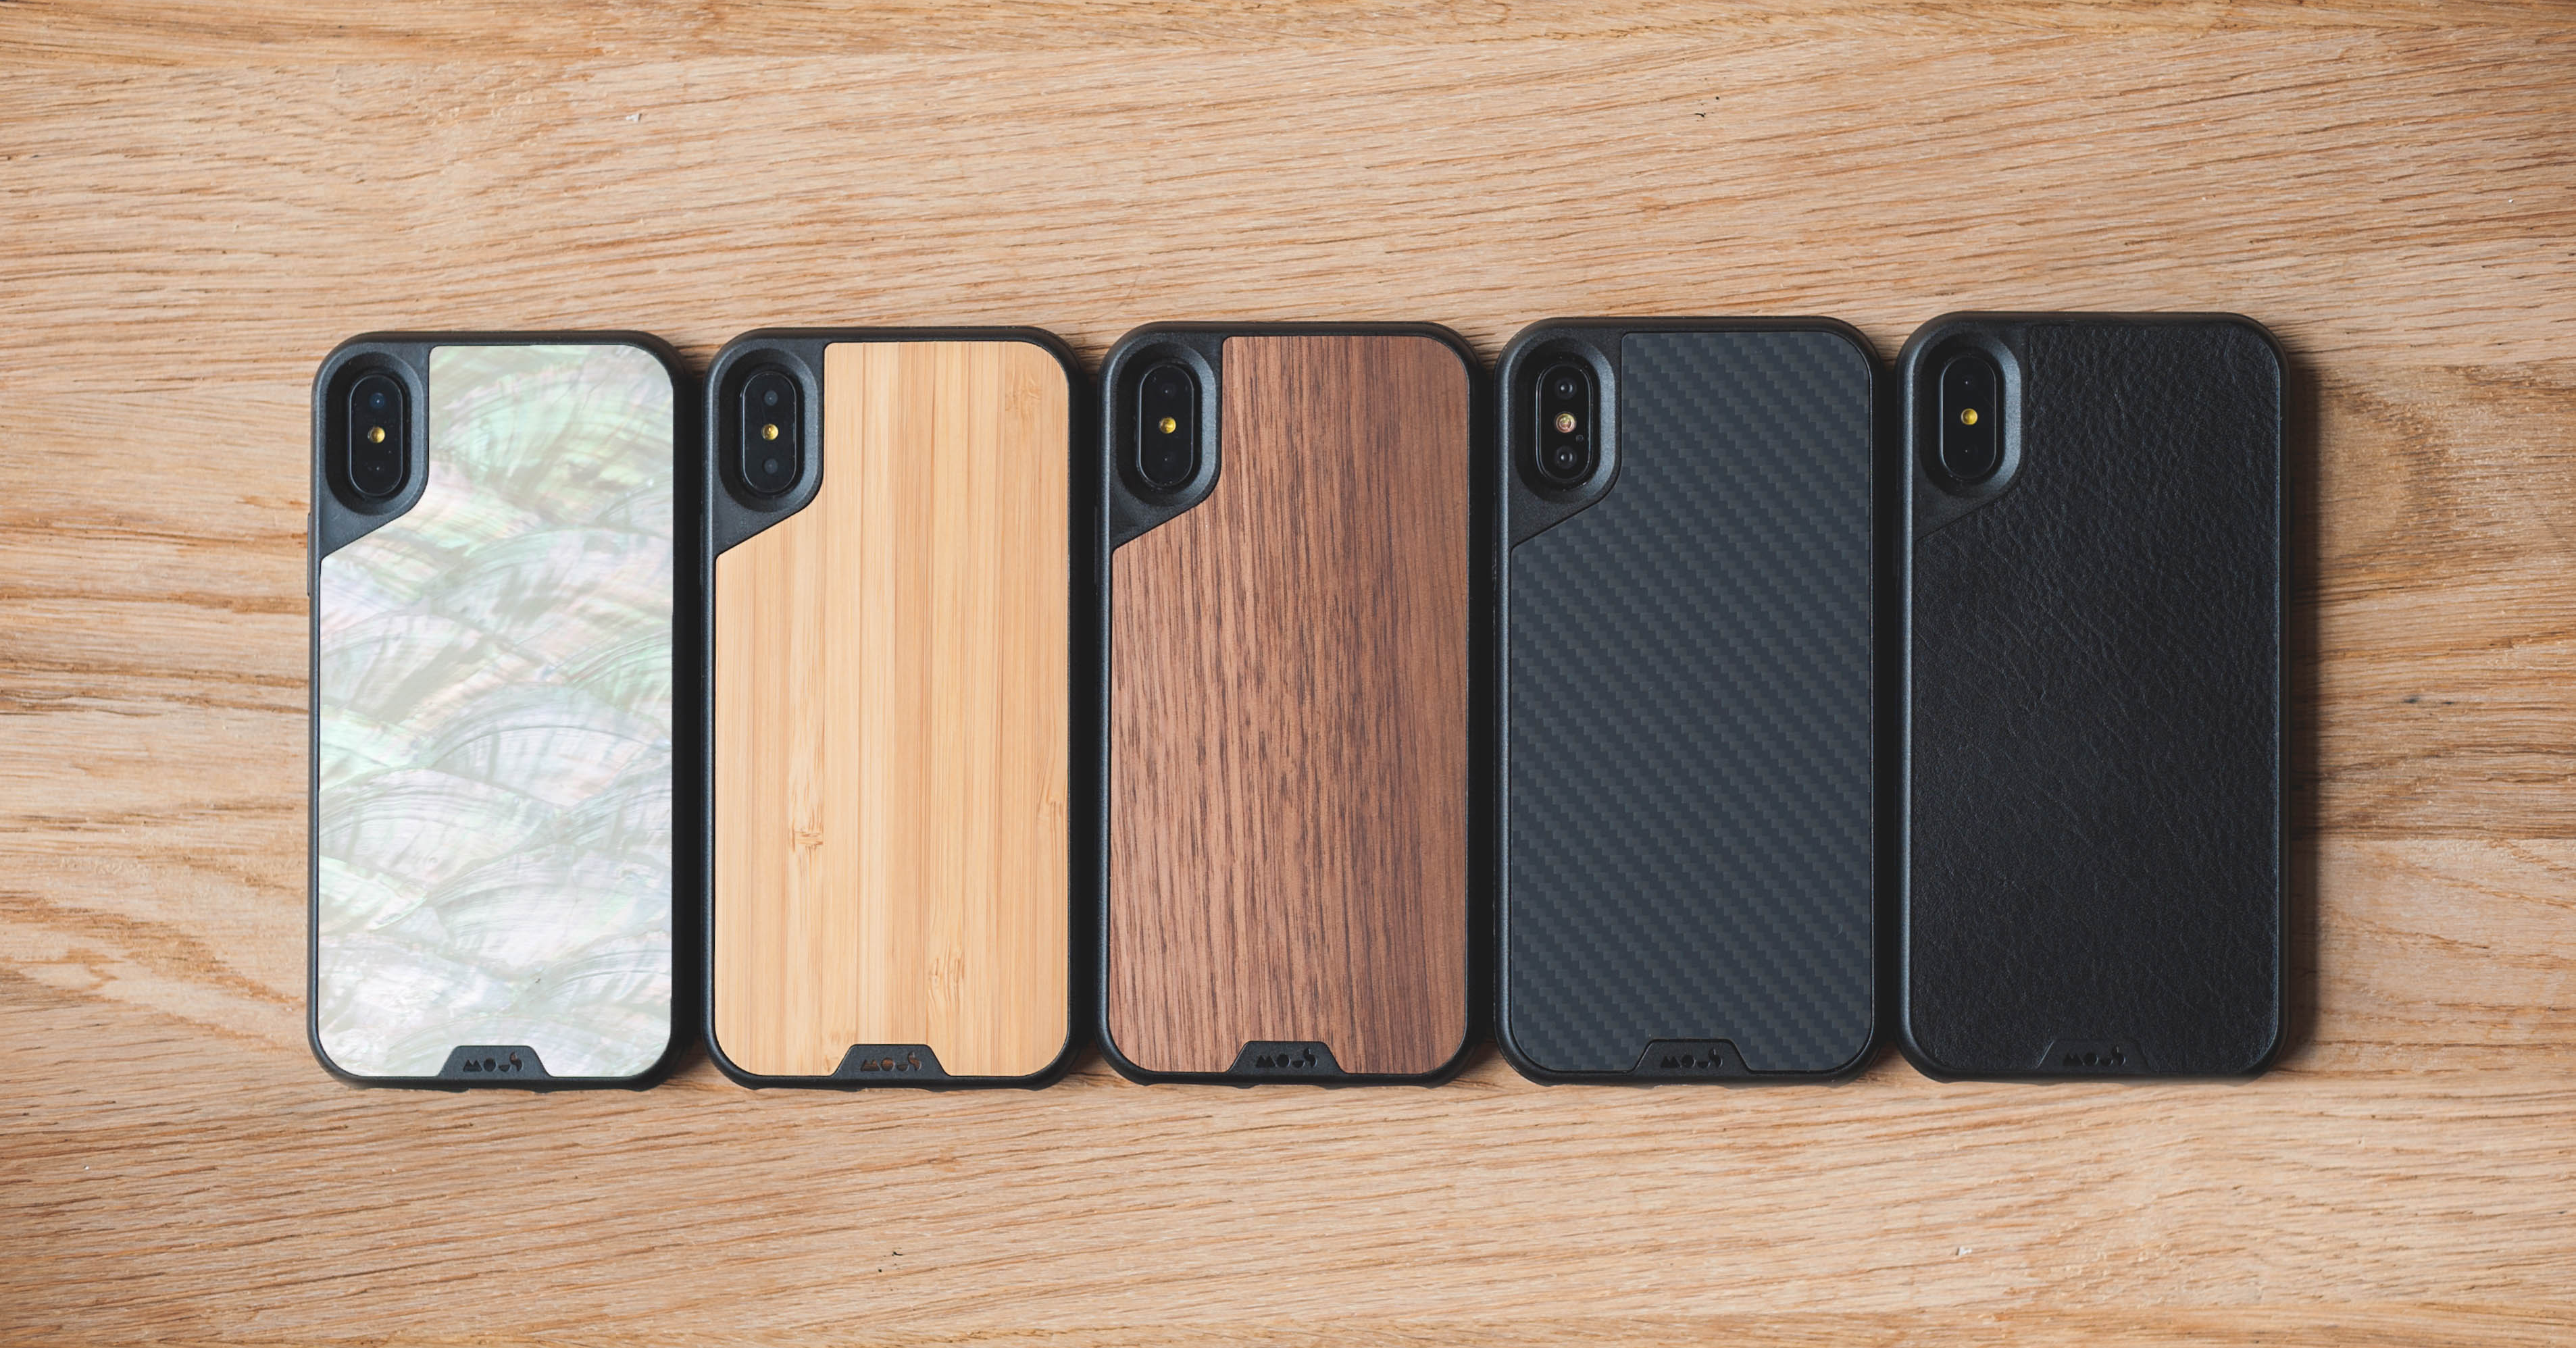 iPhone X, iPhone 6S, iPhone 6 Plus, iPhone XS, Apple iPhone 8, Limitless 2.0 Official Mous iPhone 8/7/6s/6 Case, , Screen Protectors, Mobile Phone Accessories, , mous case, Mobile phone case, Mobile phone, Gadget, Mobile phone accessories, Portable communications device, Communication Device, Wood, Smartphone, Iphone, Brown